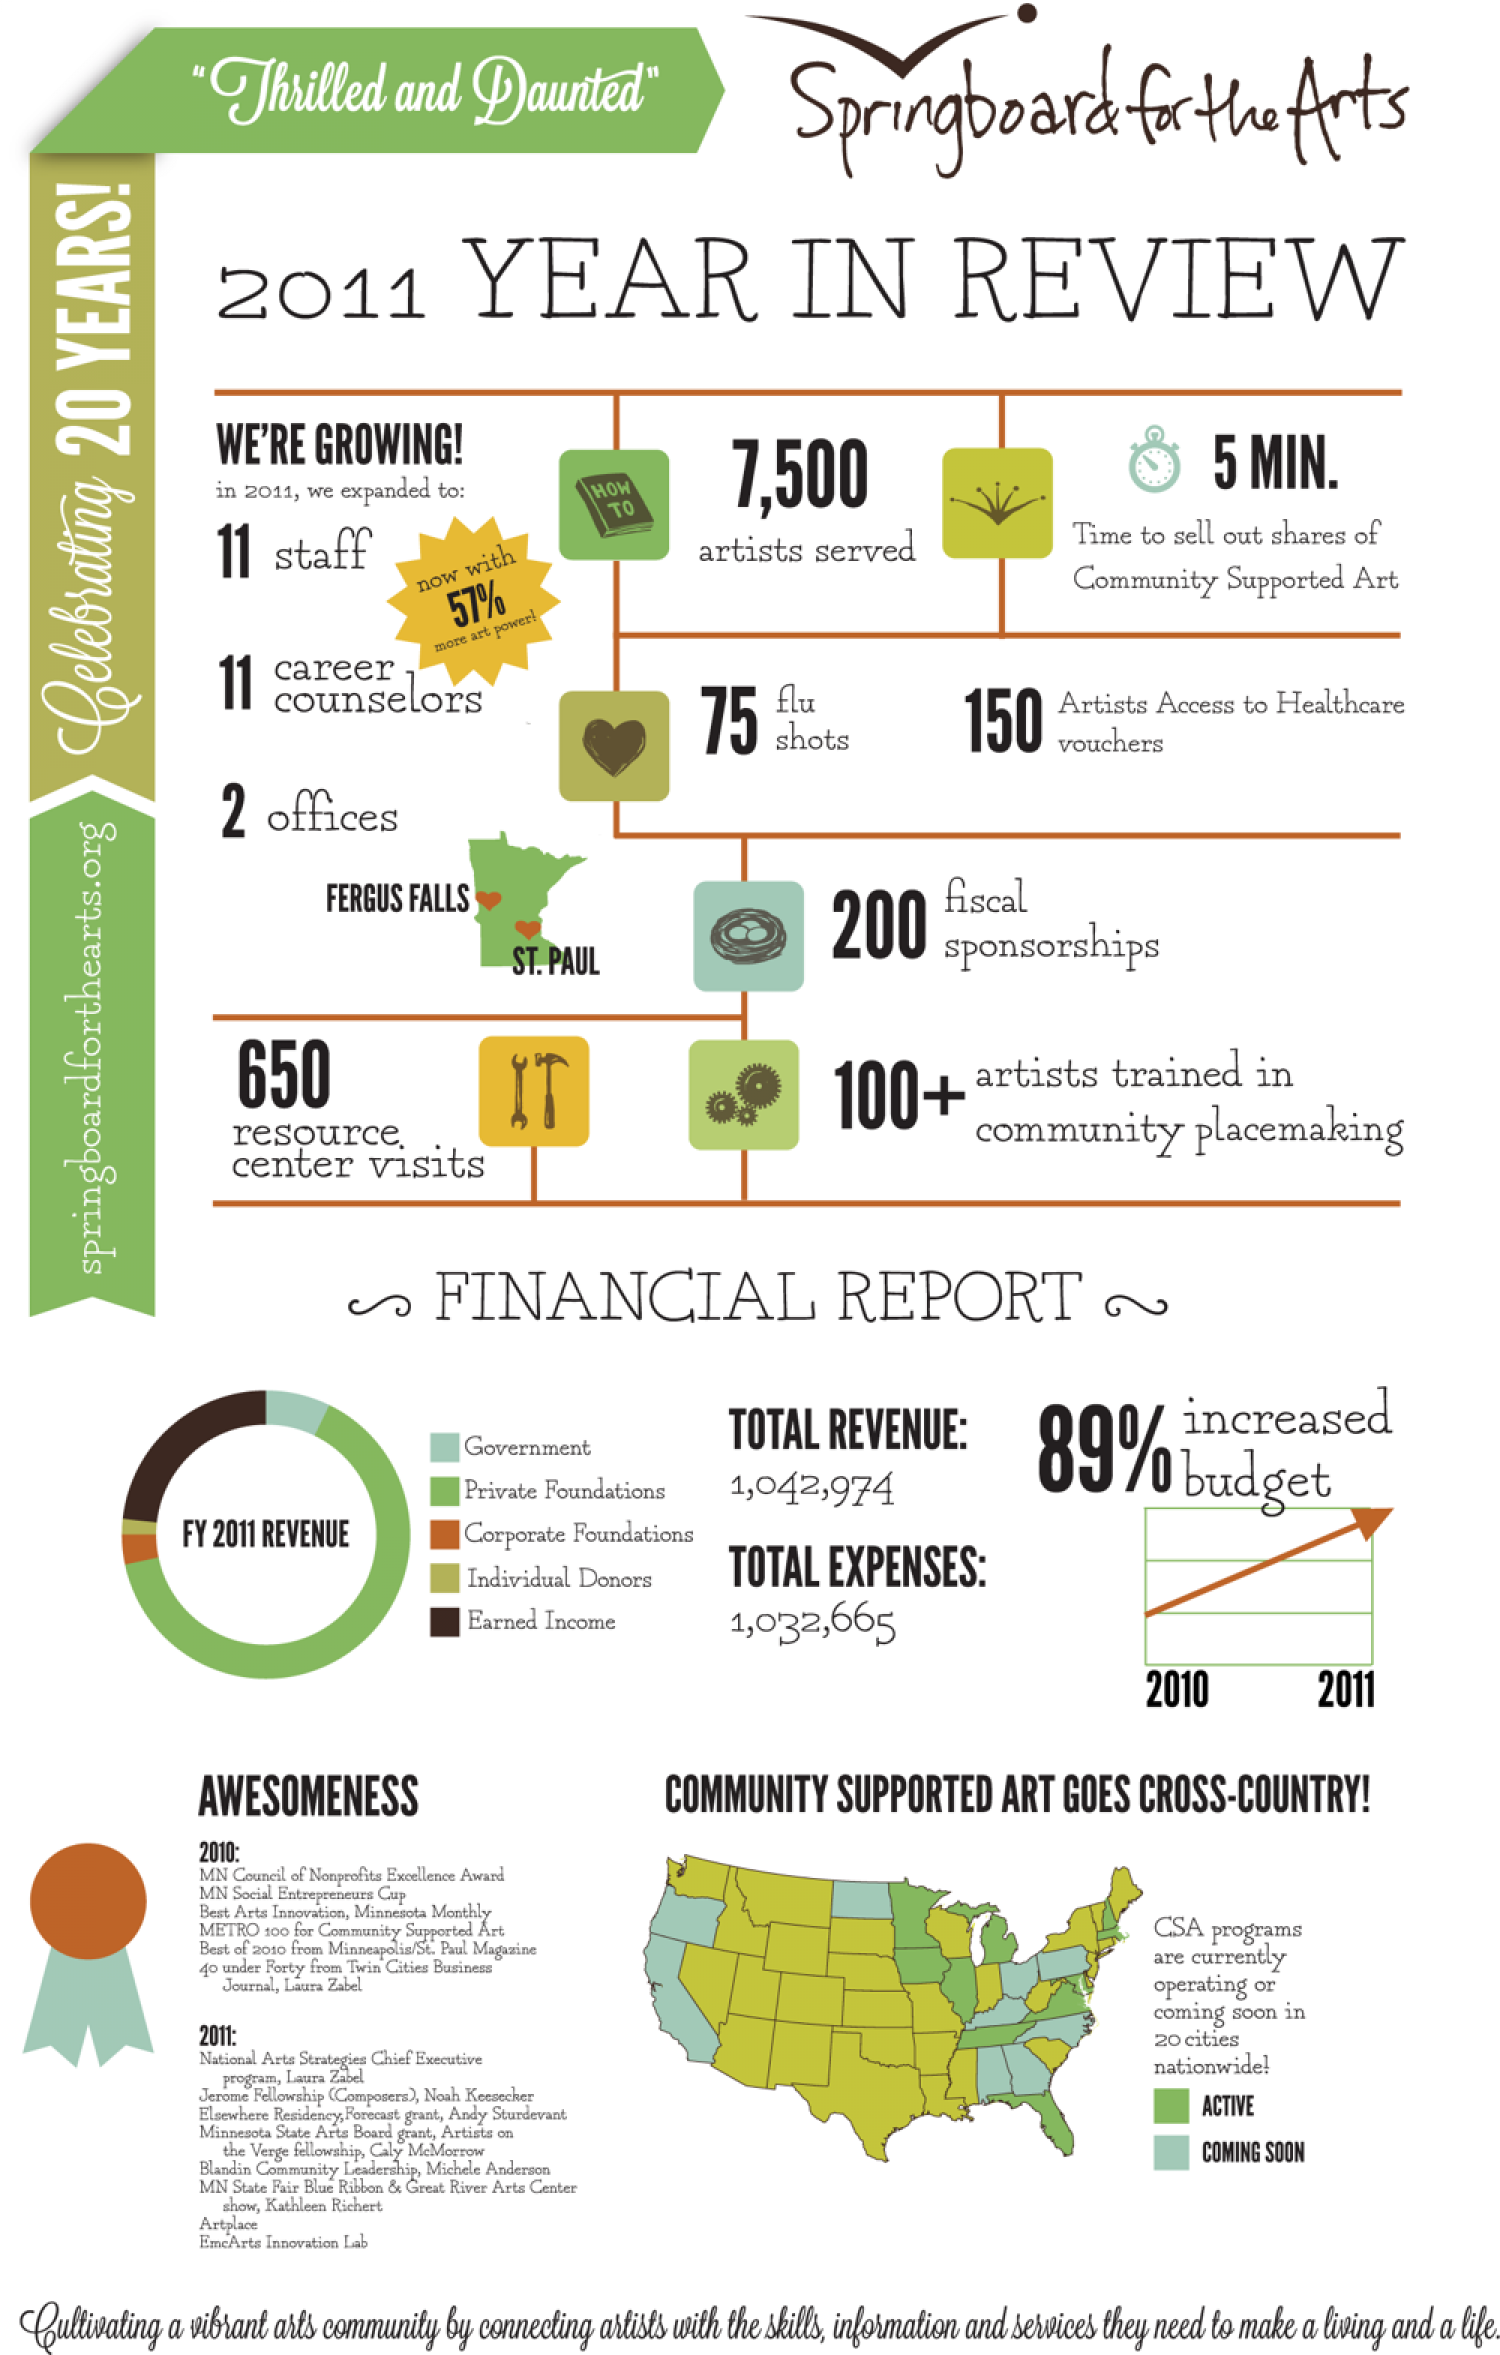 Springboard for the Arts 2011 Year in Review Infographic